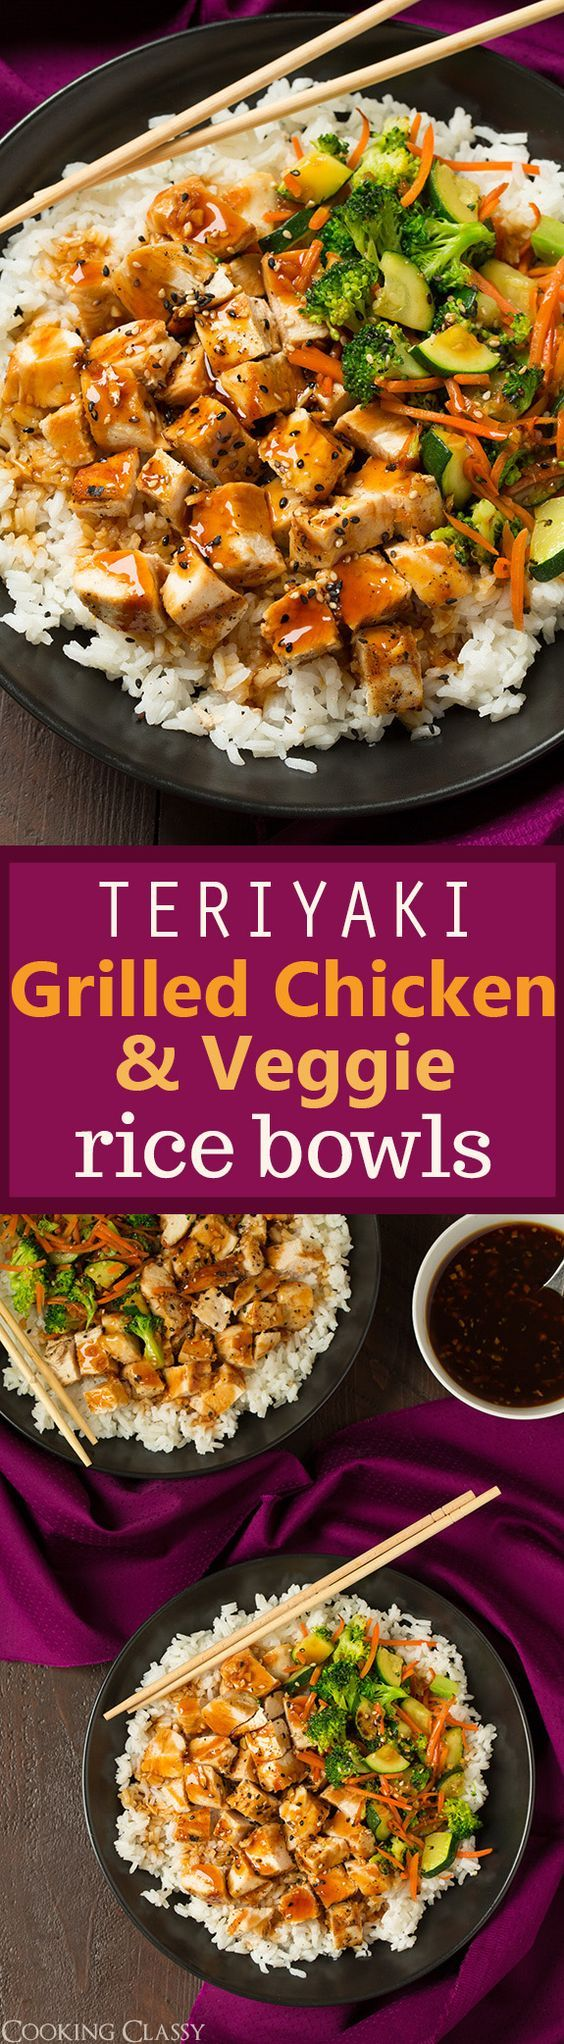 Teriyaki Grilled Chicken and Veggie Rice Bowls - Cooking Classy http://www.cookingclassy.com/2016/02/teriyaki-grilled-chicken-and-veggie-rice-bowls/